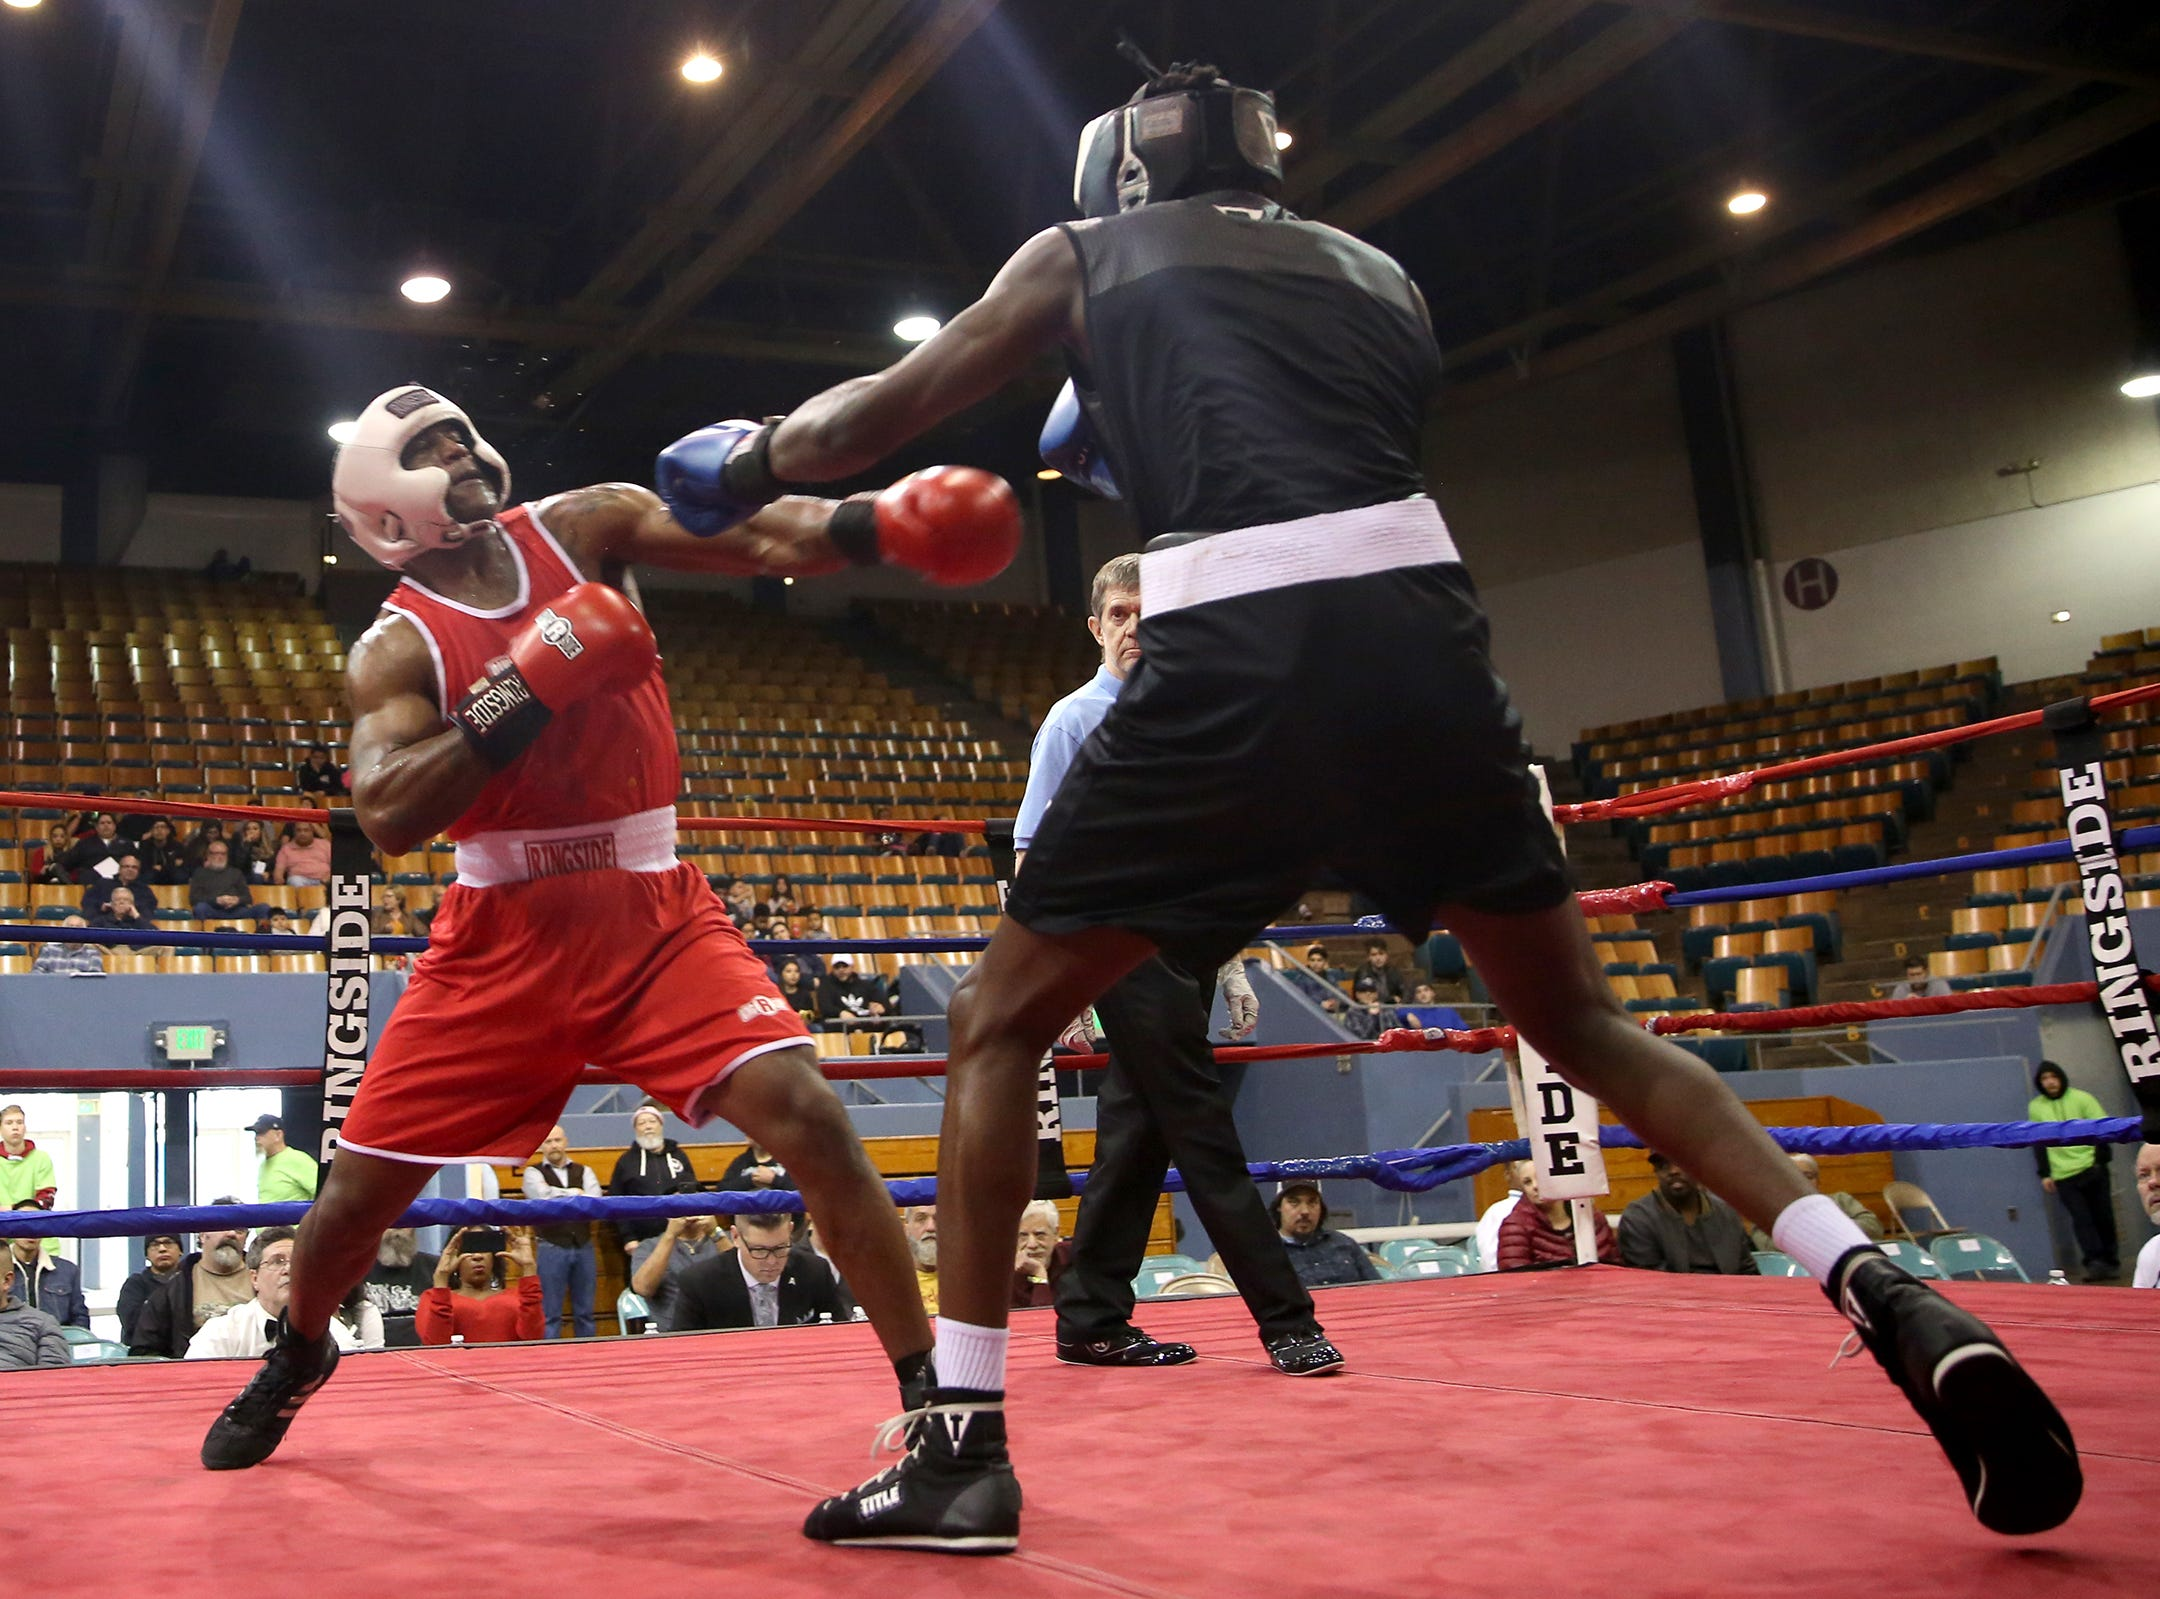 Xecareus Walker of Kent, Washington (right) takes a jab at Michad McMillan of Tigard (left) in the first bout of the Oregon Golden Gloves championship matches at the Salem Armory on Saturday, Feb. 2, 2019.